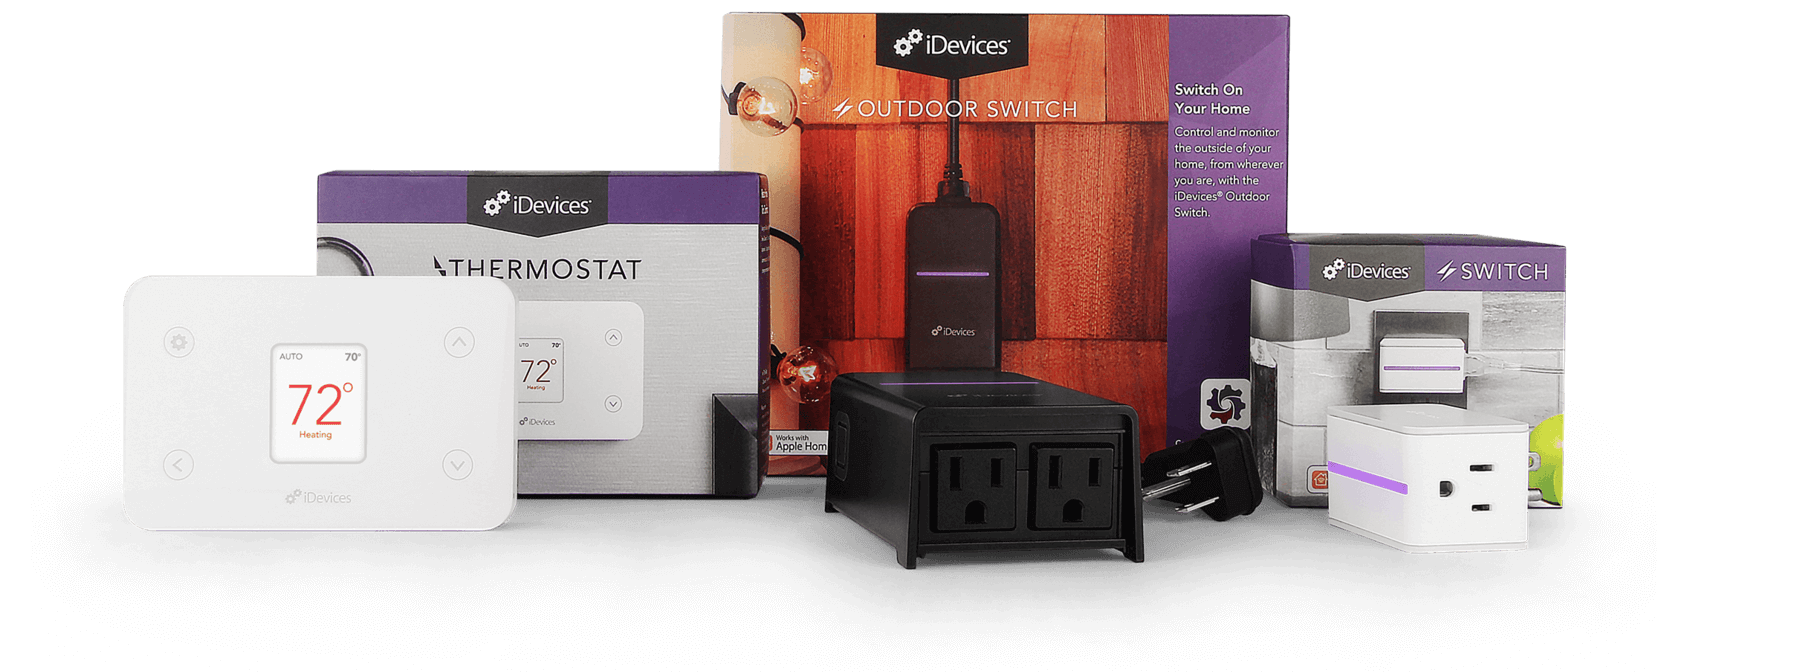 Transformation Pack, switch, outdoor switch, thermostat, smart house, home automation system, Siri Voice control, Alexa voice commands, home automation packages